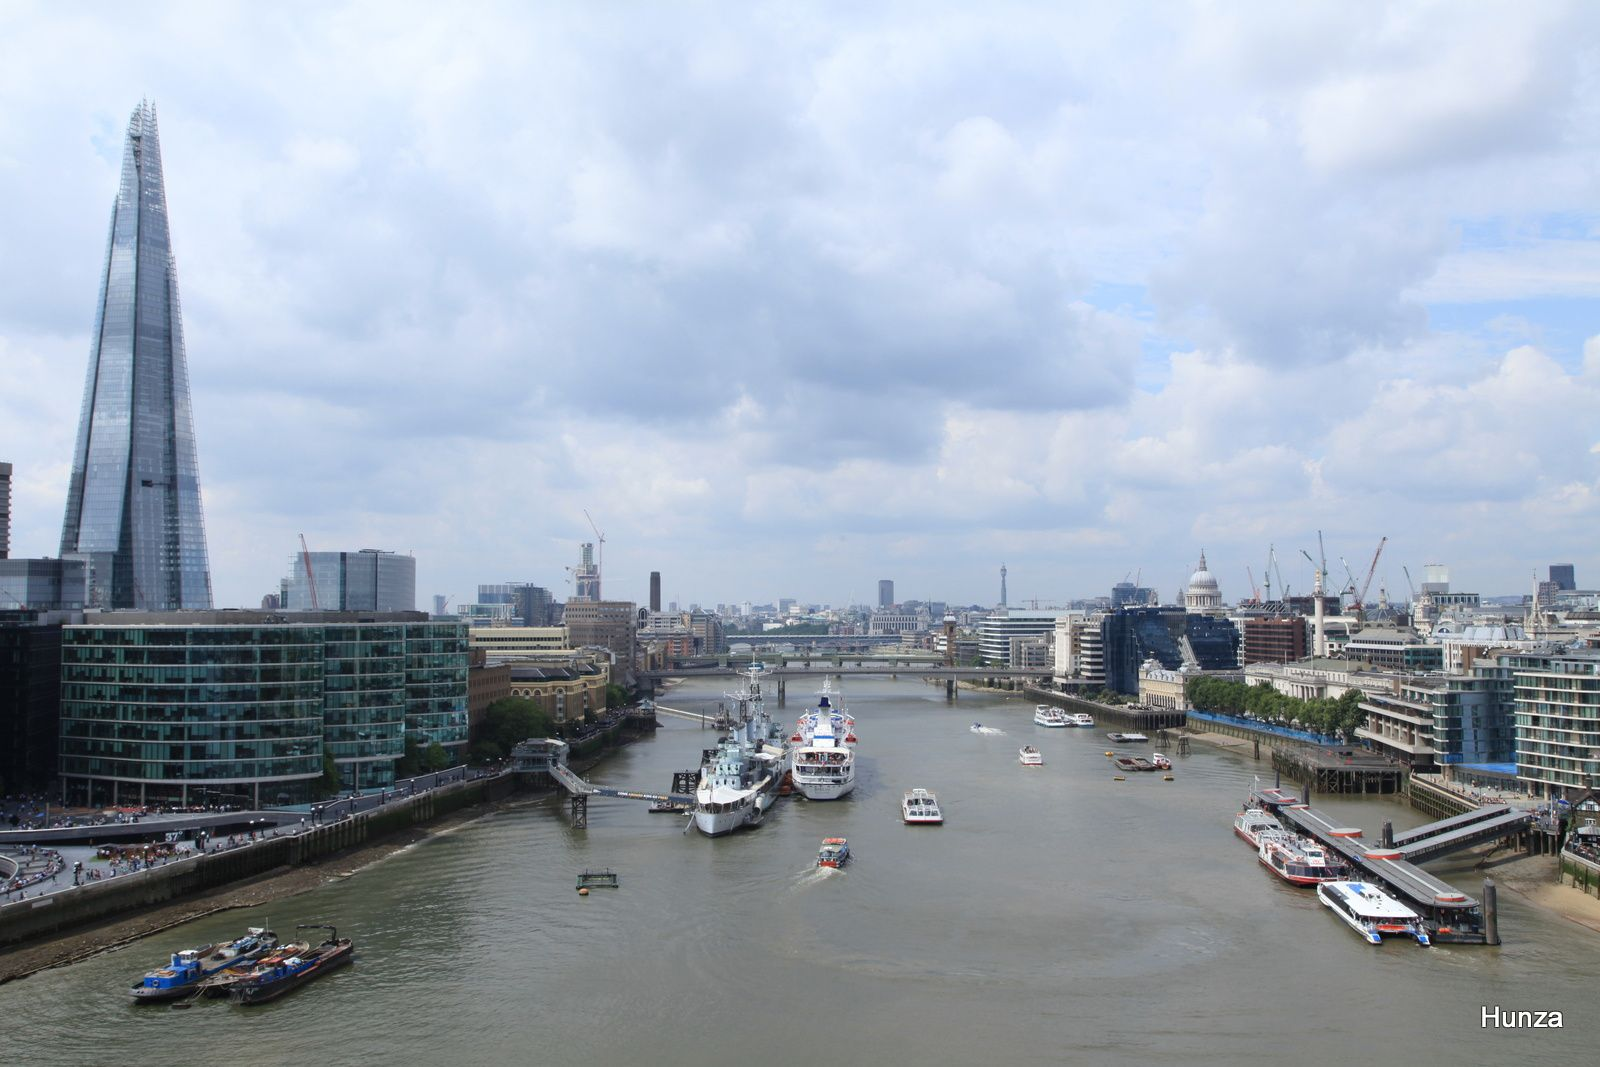 Panorama en direction de l'ouest de Londres